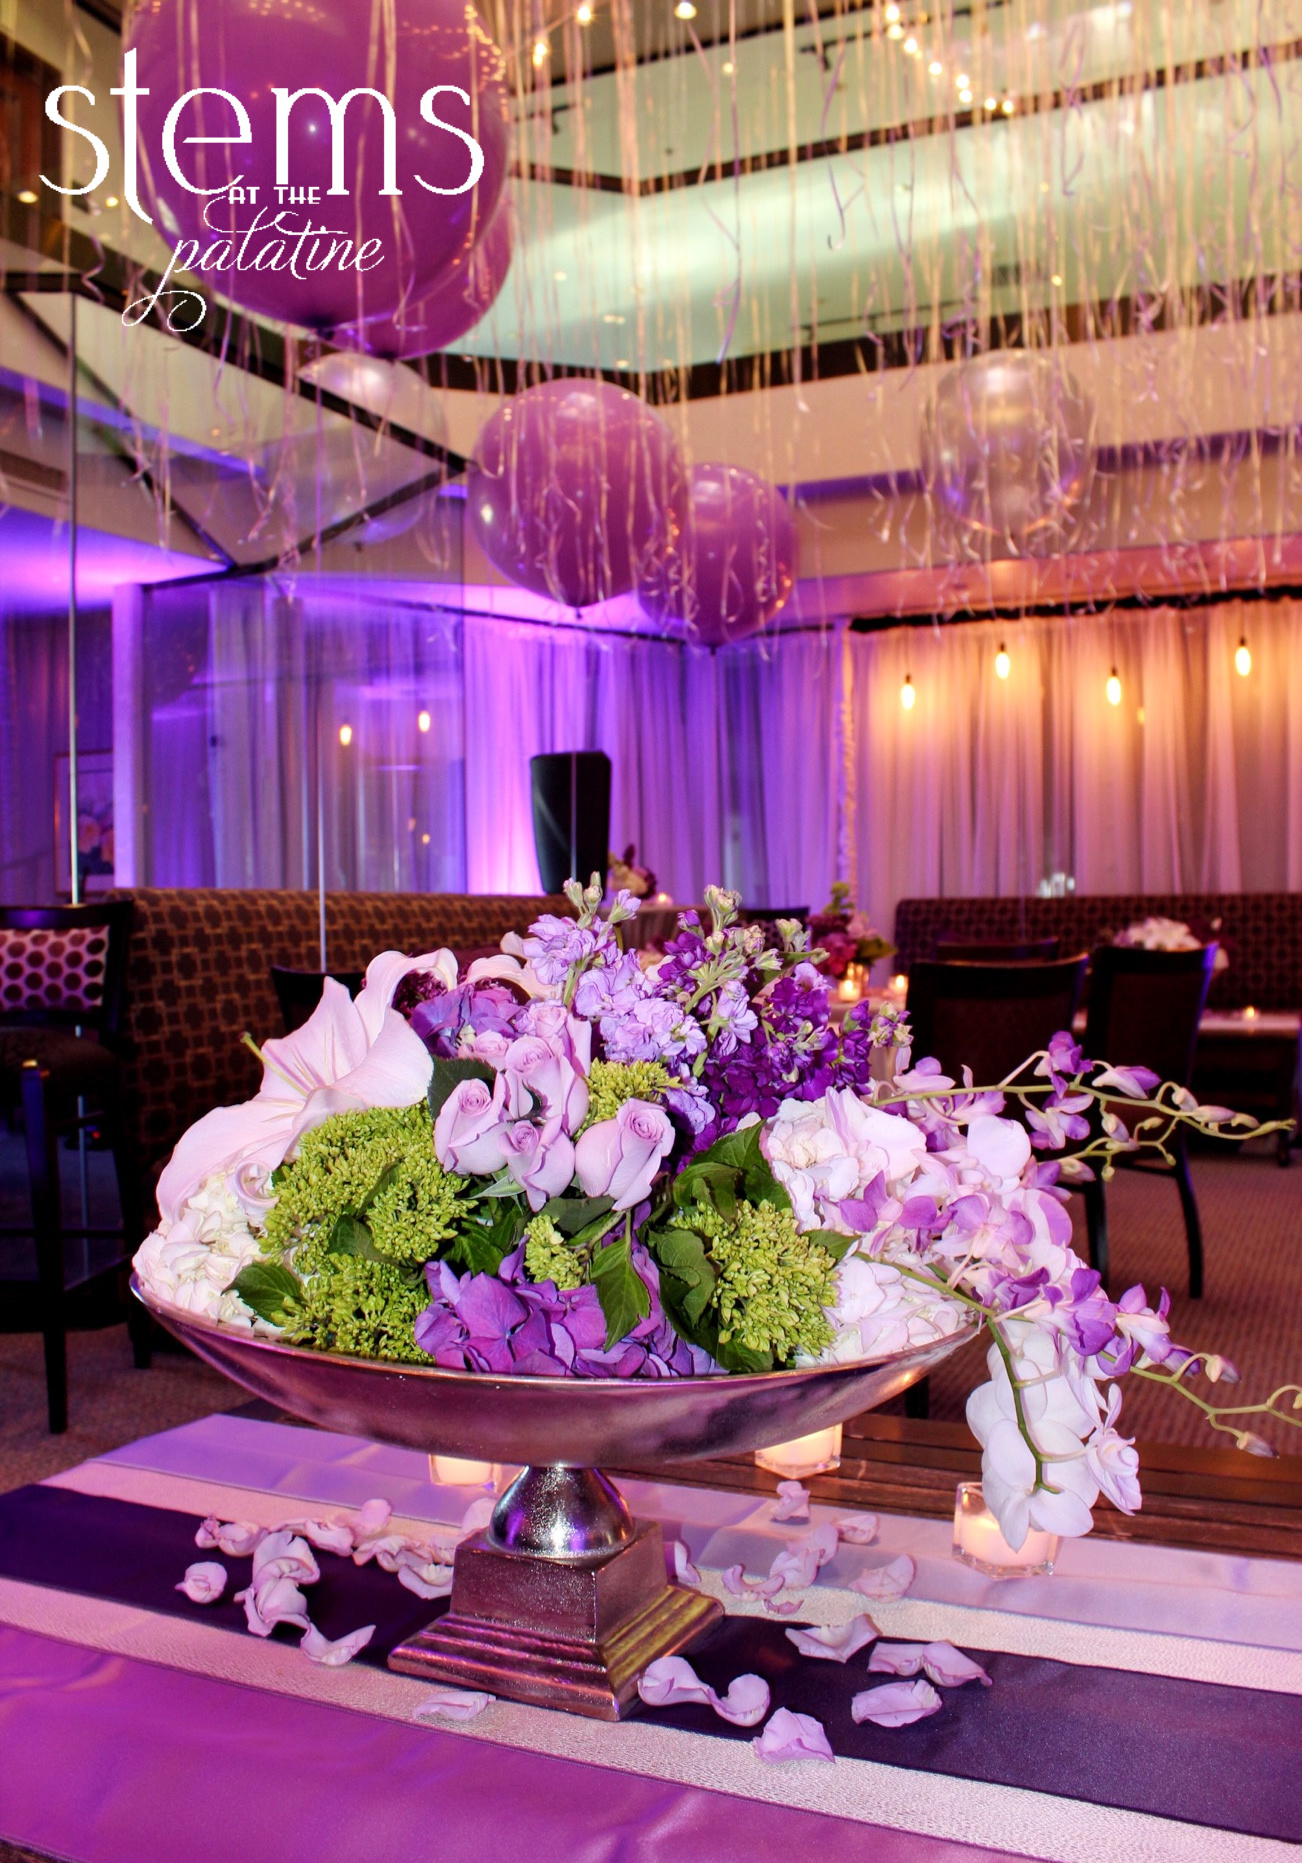 Floral & Event Design by  Stems at The Palatine